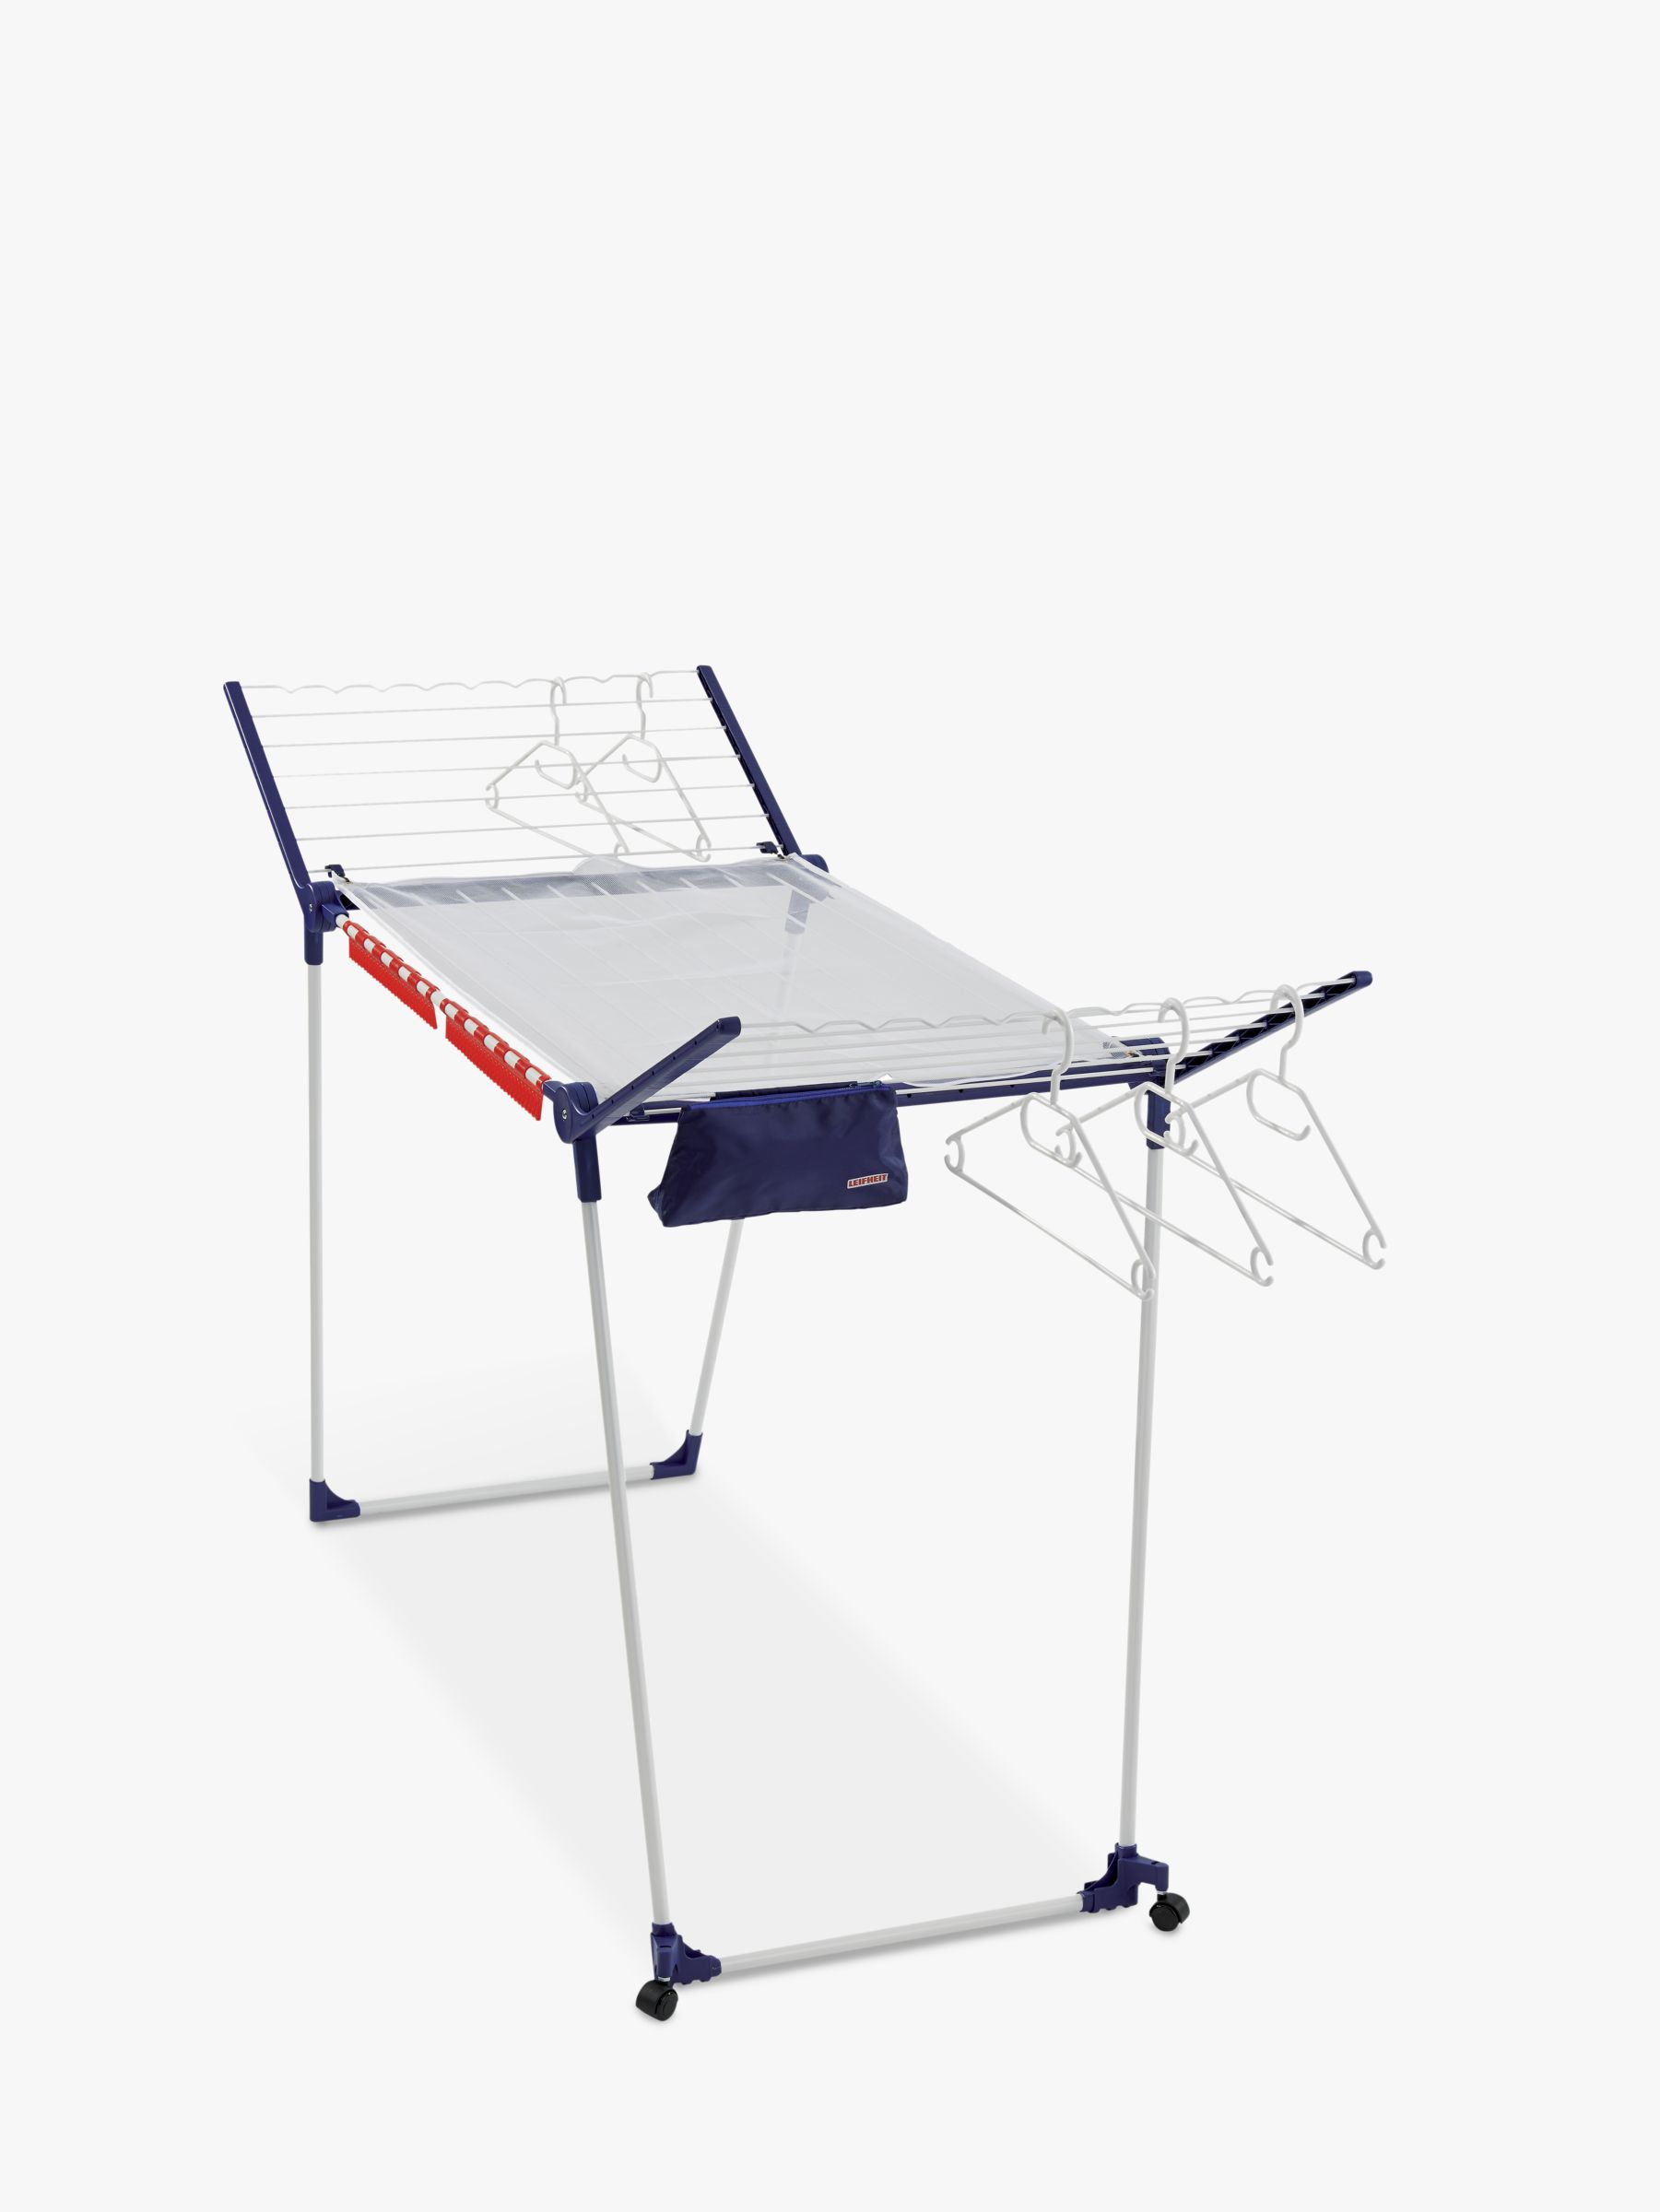 Leifheit Leifheit Pegasus 200 Deluxe Mobile Indoor Clothes Airer